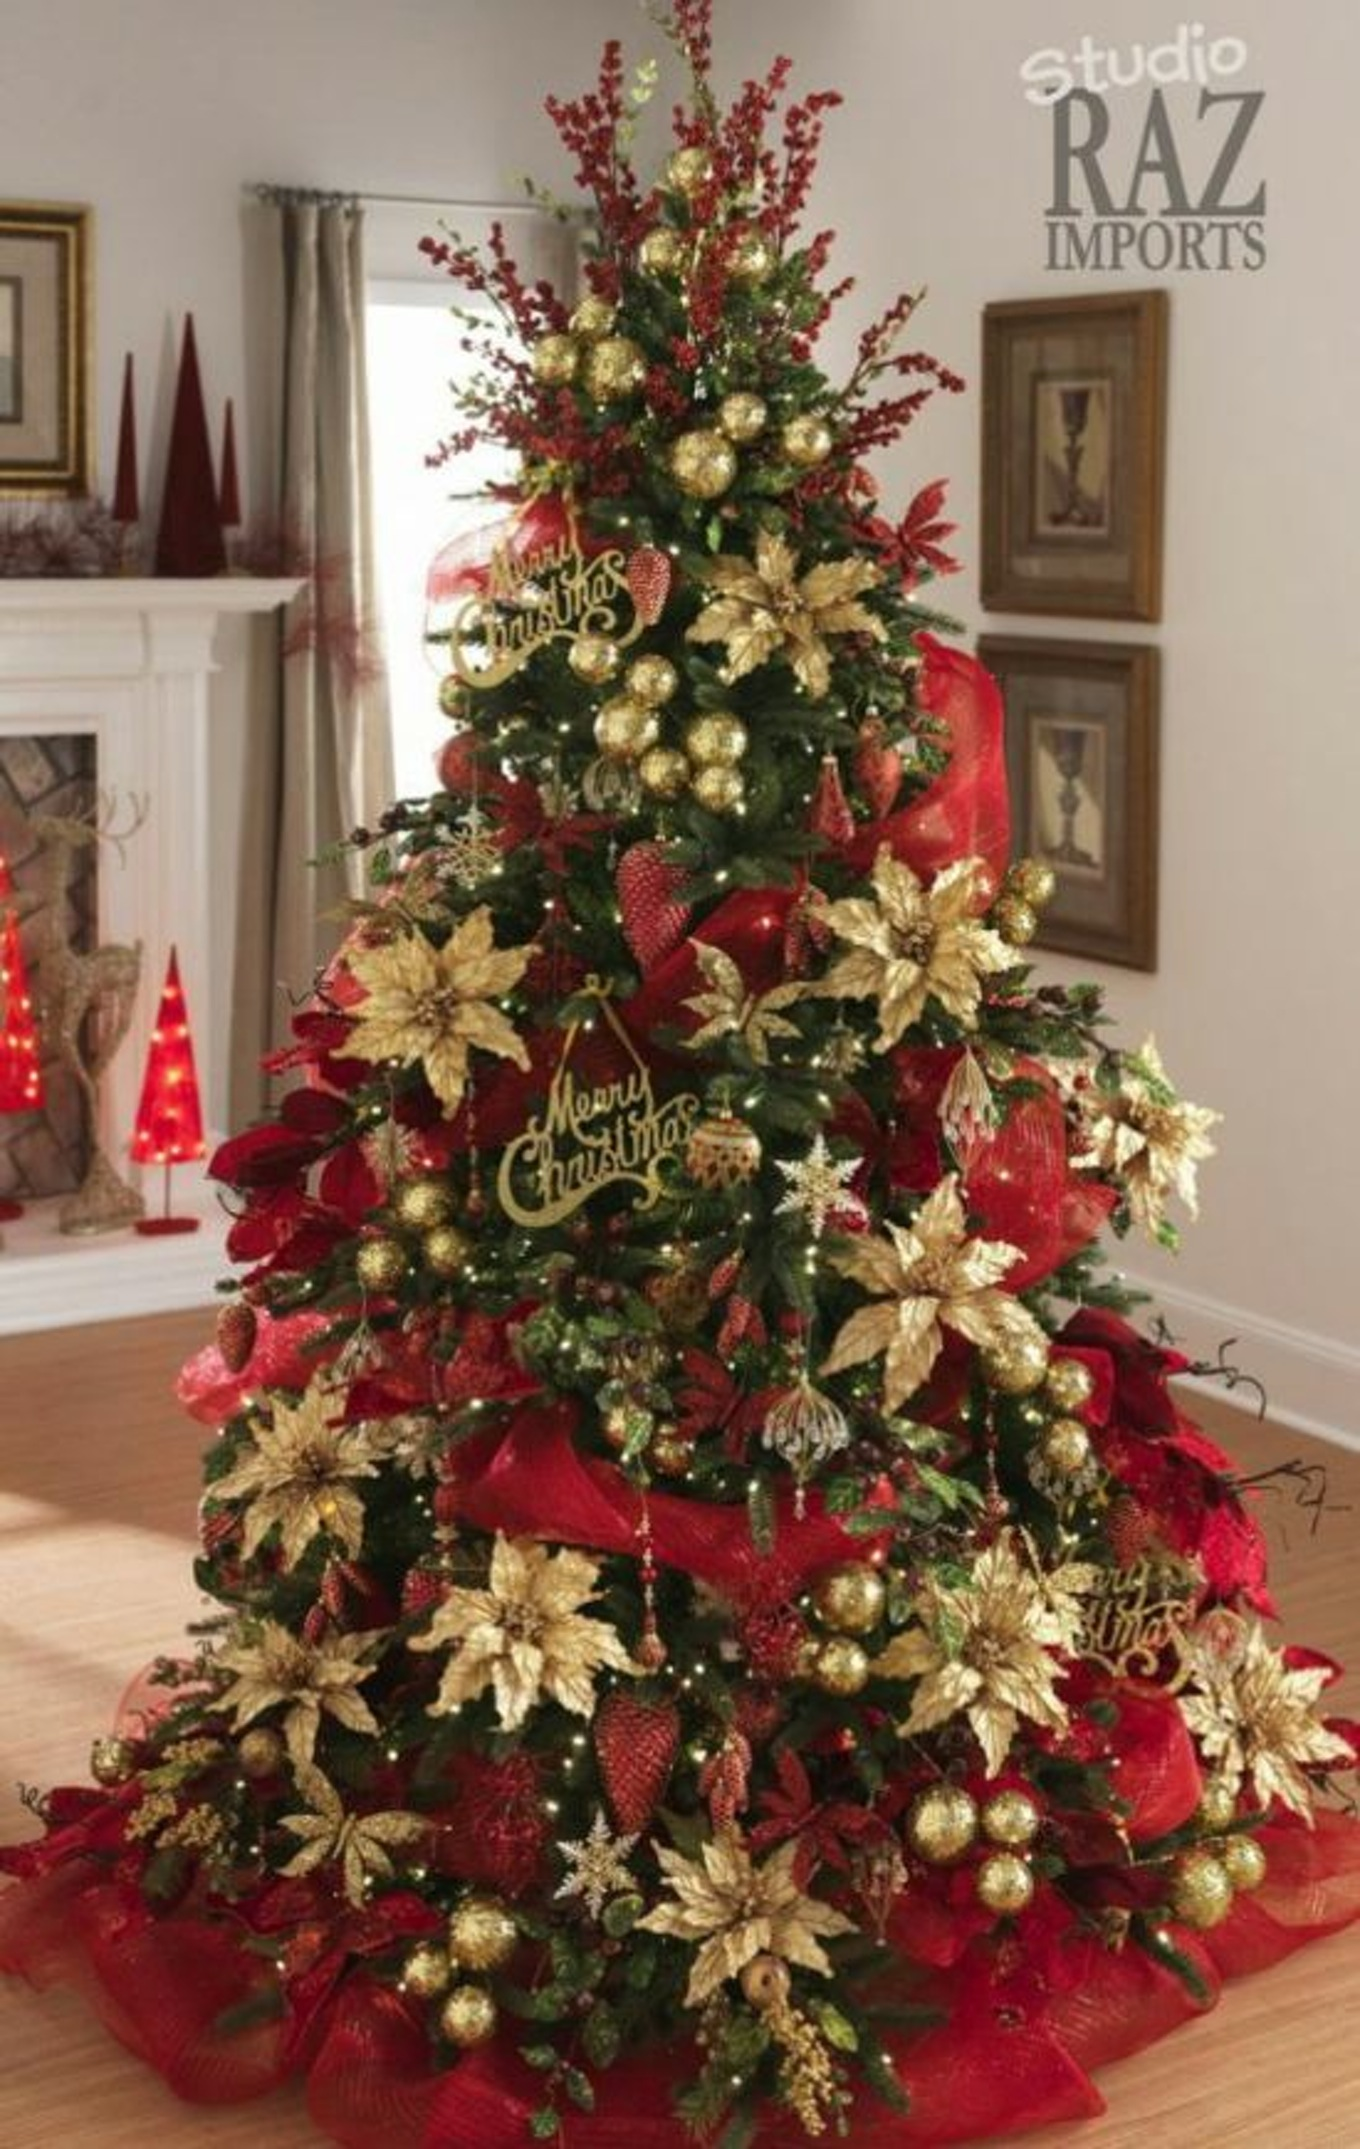 velvet poinsettias source razimportscom decorating a christmas tree